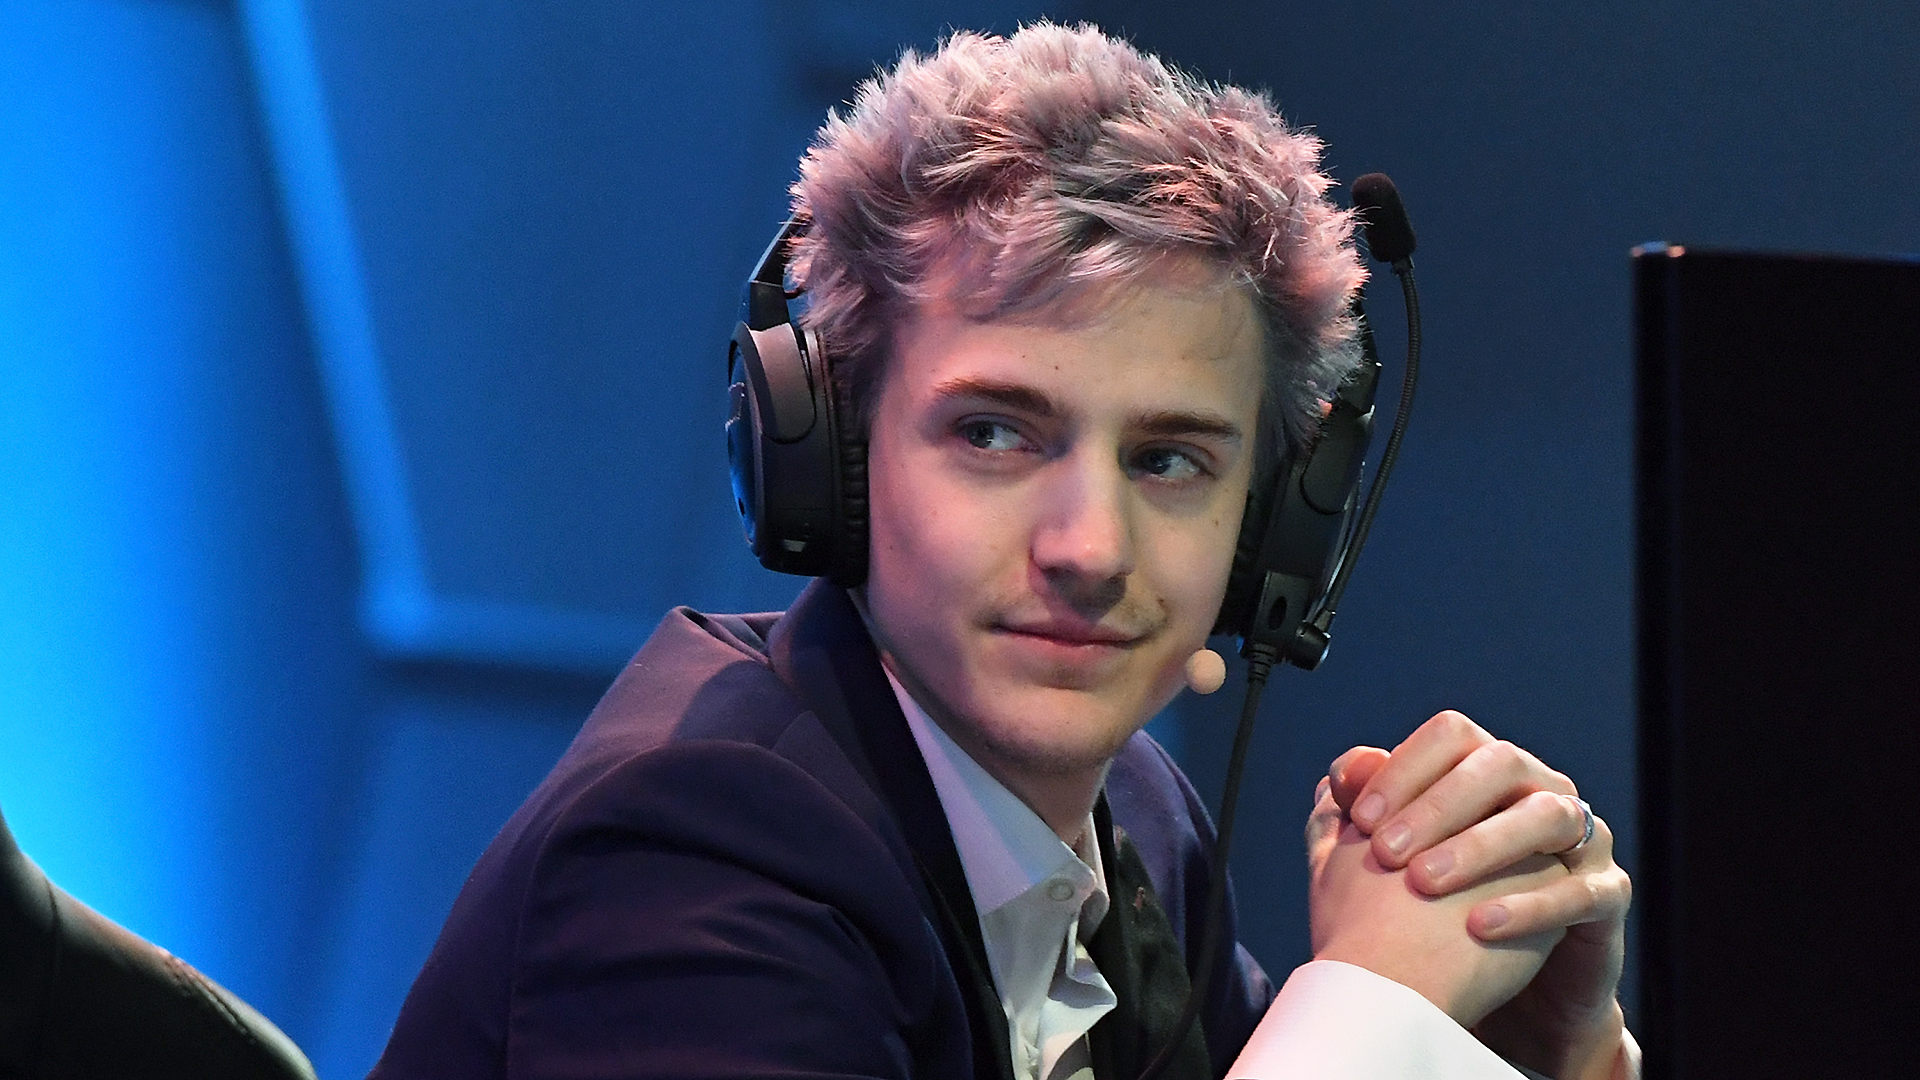 Ninja, Alinity and xQc get into heated Twitter argument: 'Don't you have another cat to abuse?'